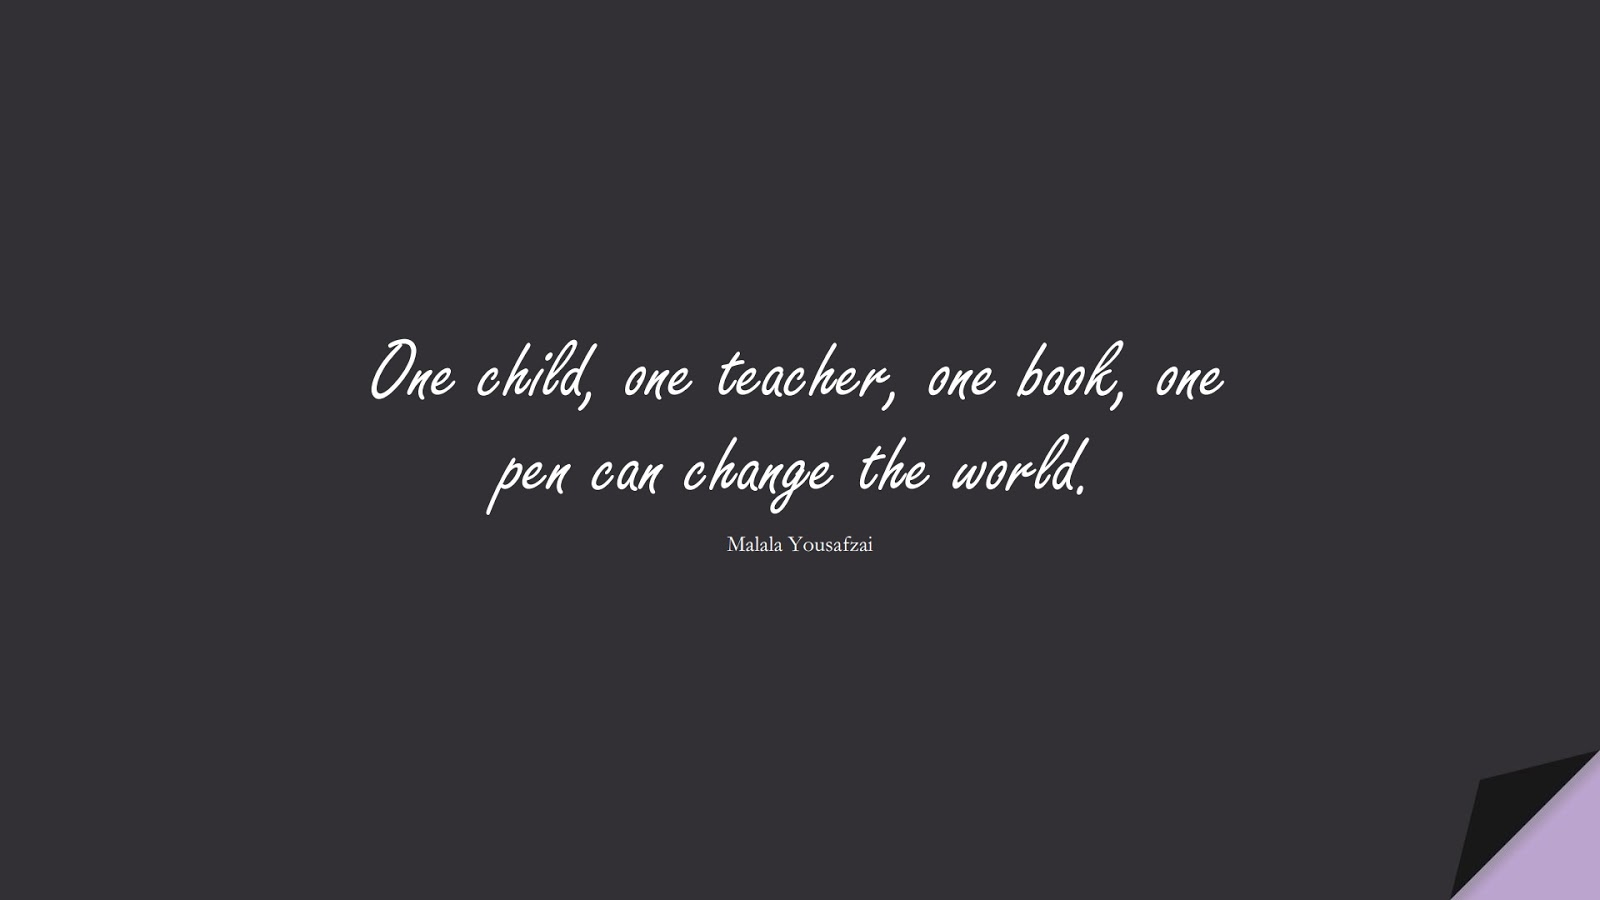 One child, one teacher, one book, one pen can change the world. (Malala Yousafzai);  #FamousQuotes